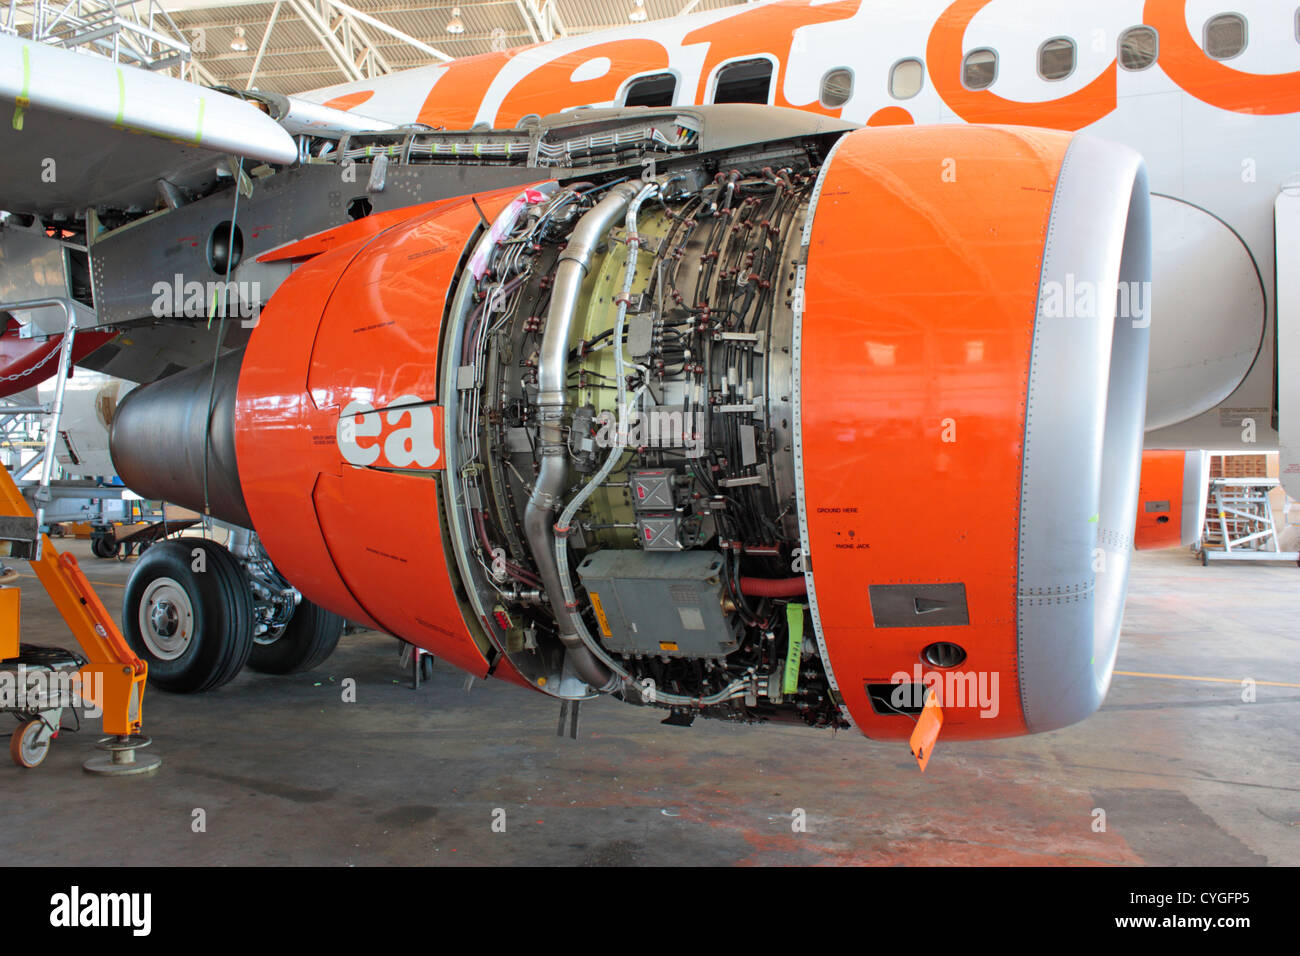 CFM56 turbofan jet engine on an easyJet Airbus A319 airliner under maintenance at SR Technics Malta - Stock Image